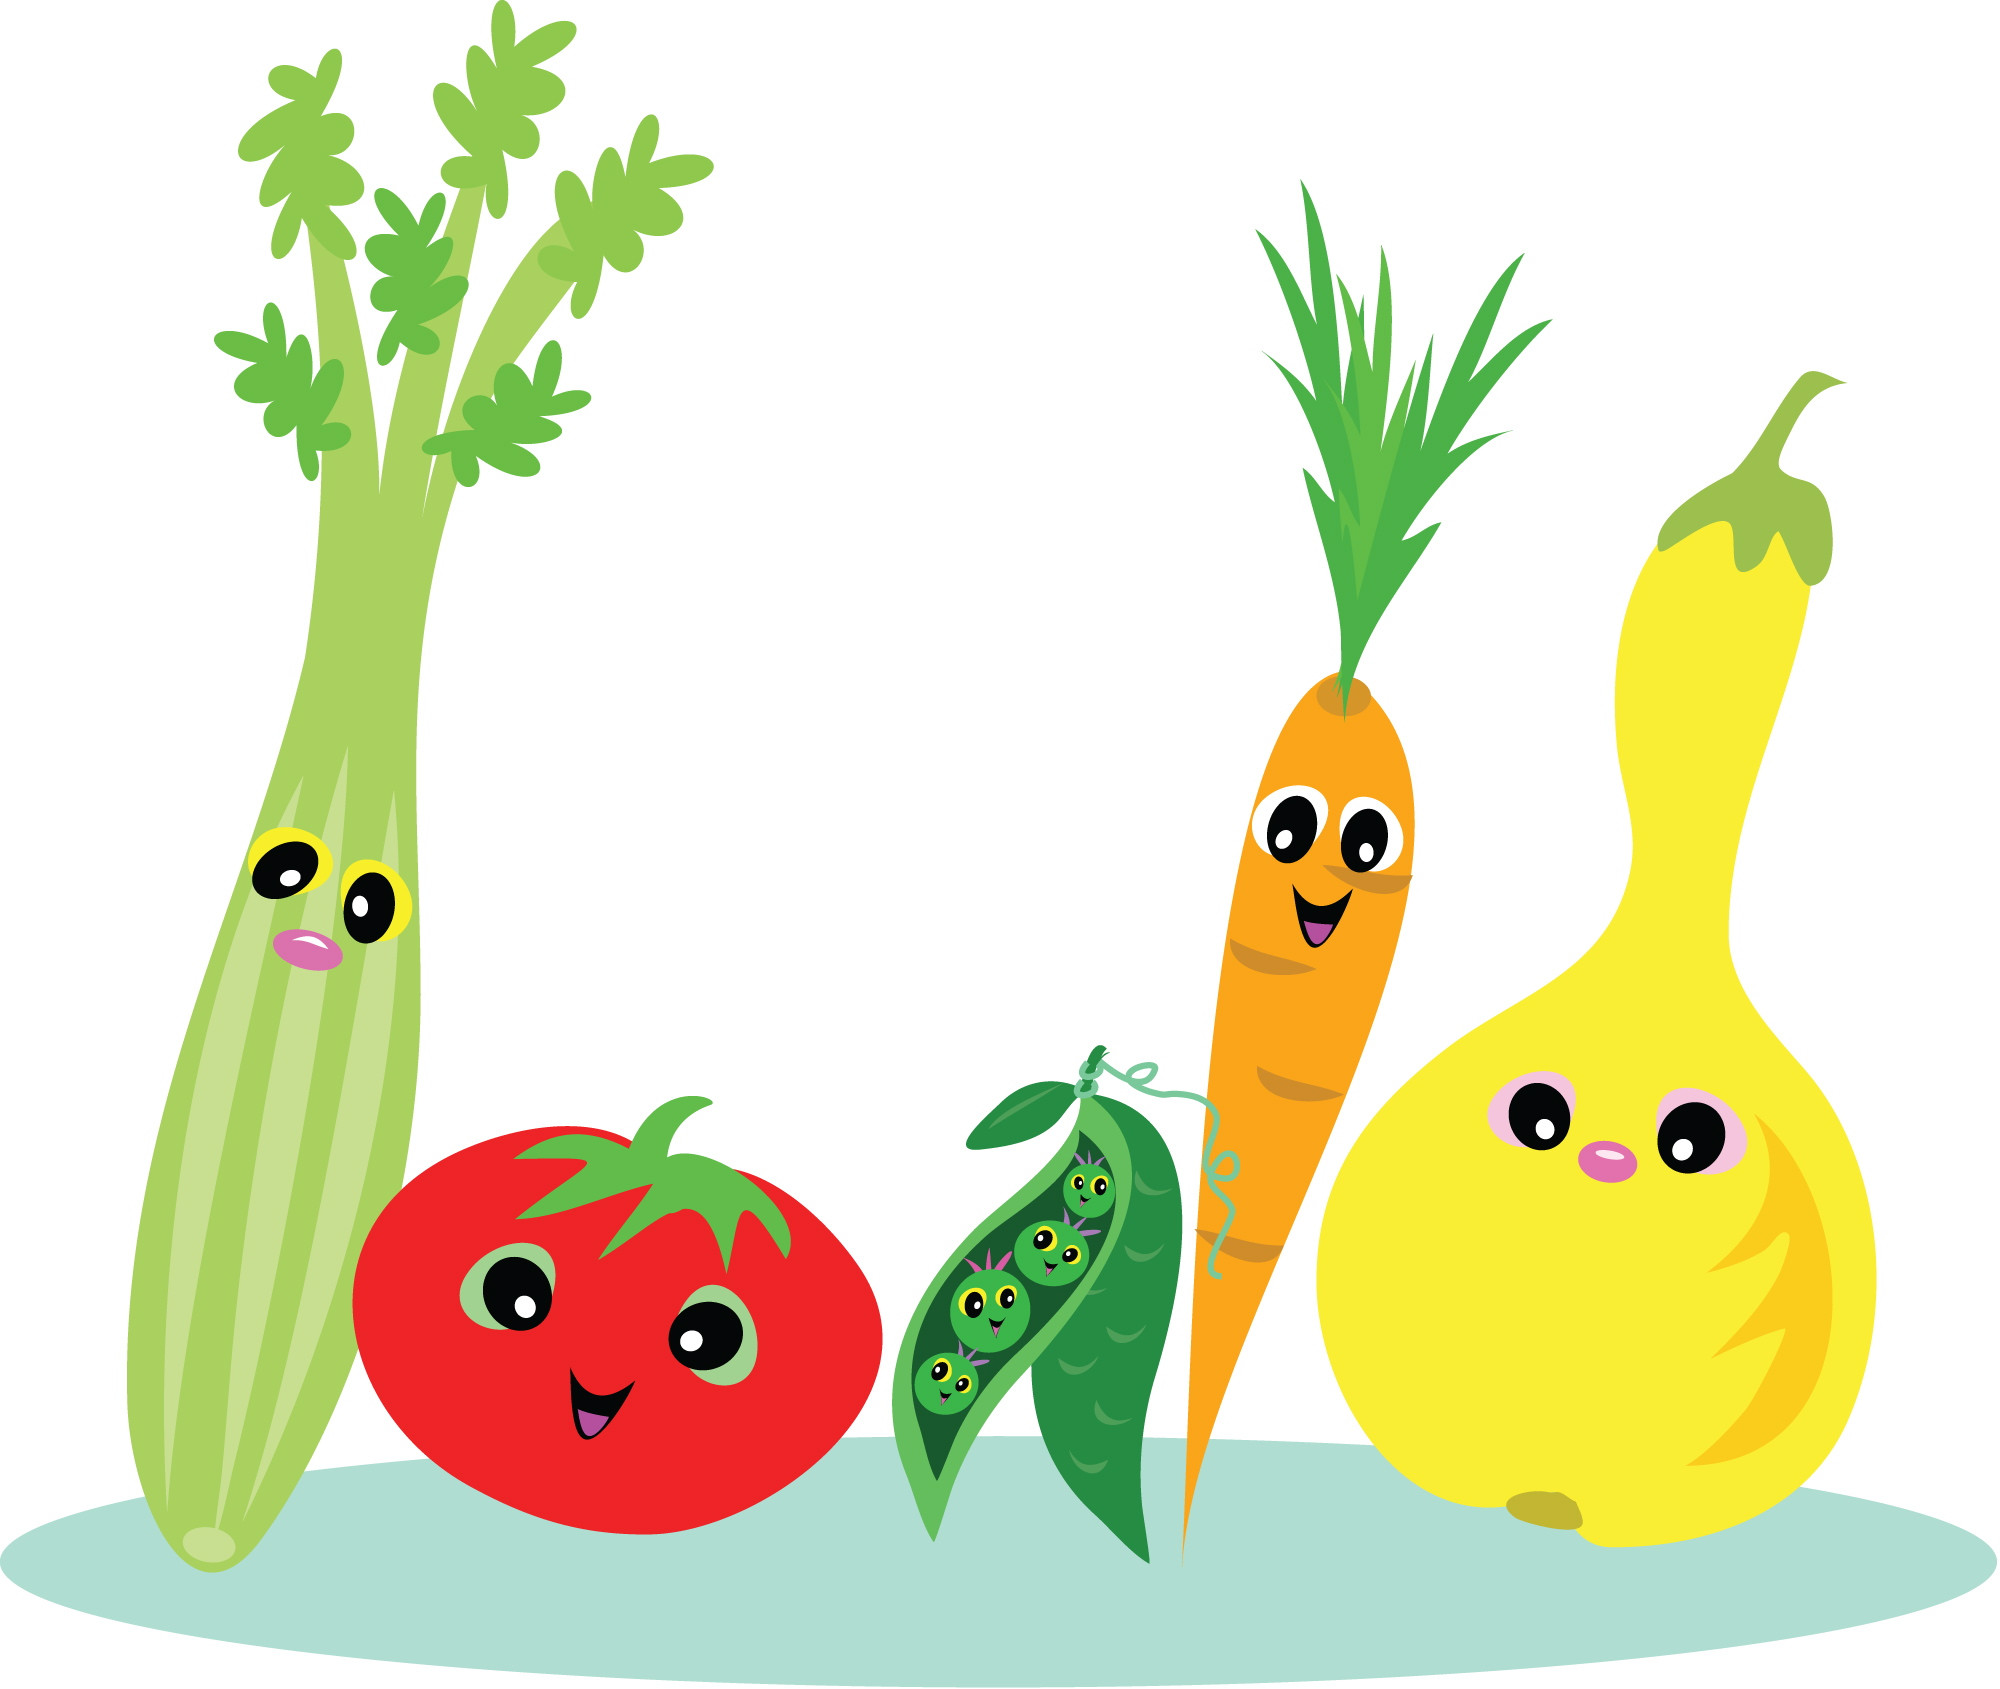 Healthy Snacks Clipart  Food clipart healthy eating Pencil and in color food